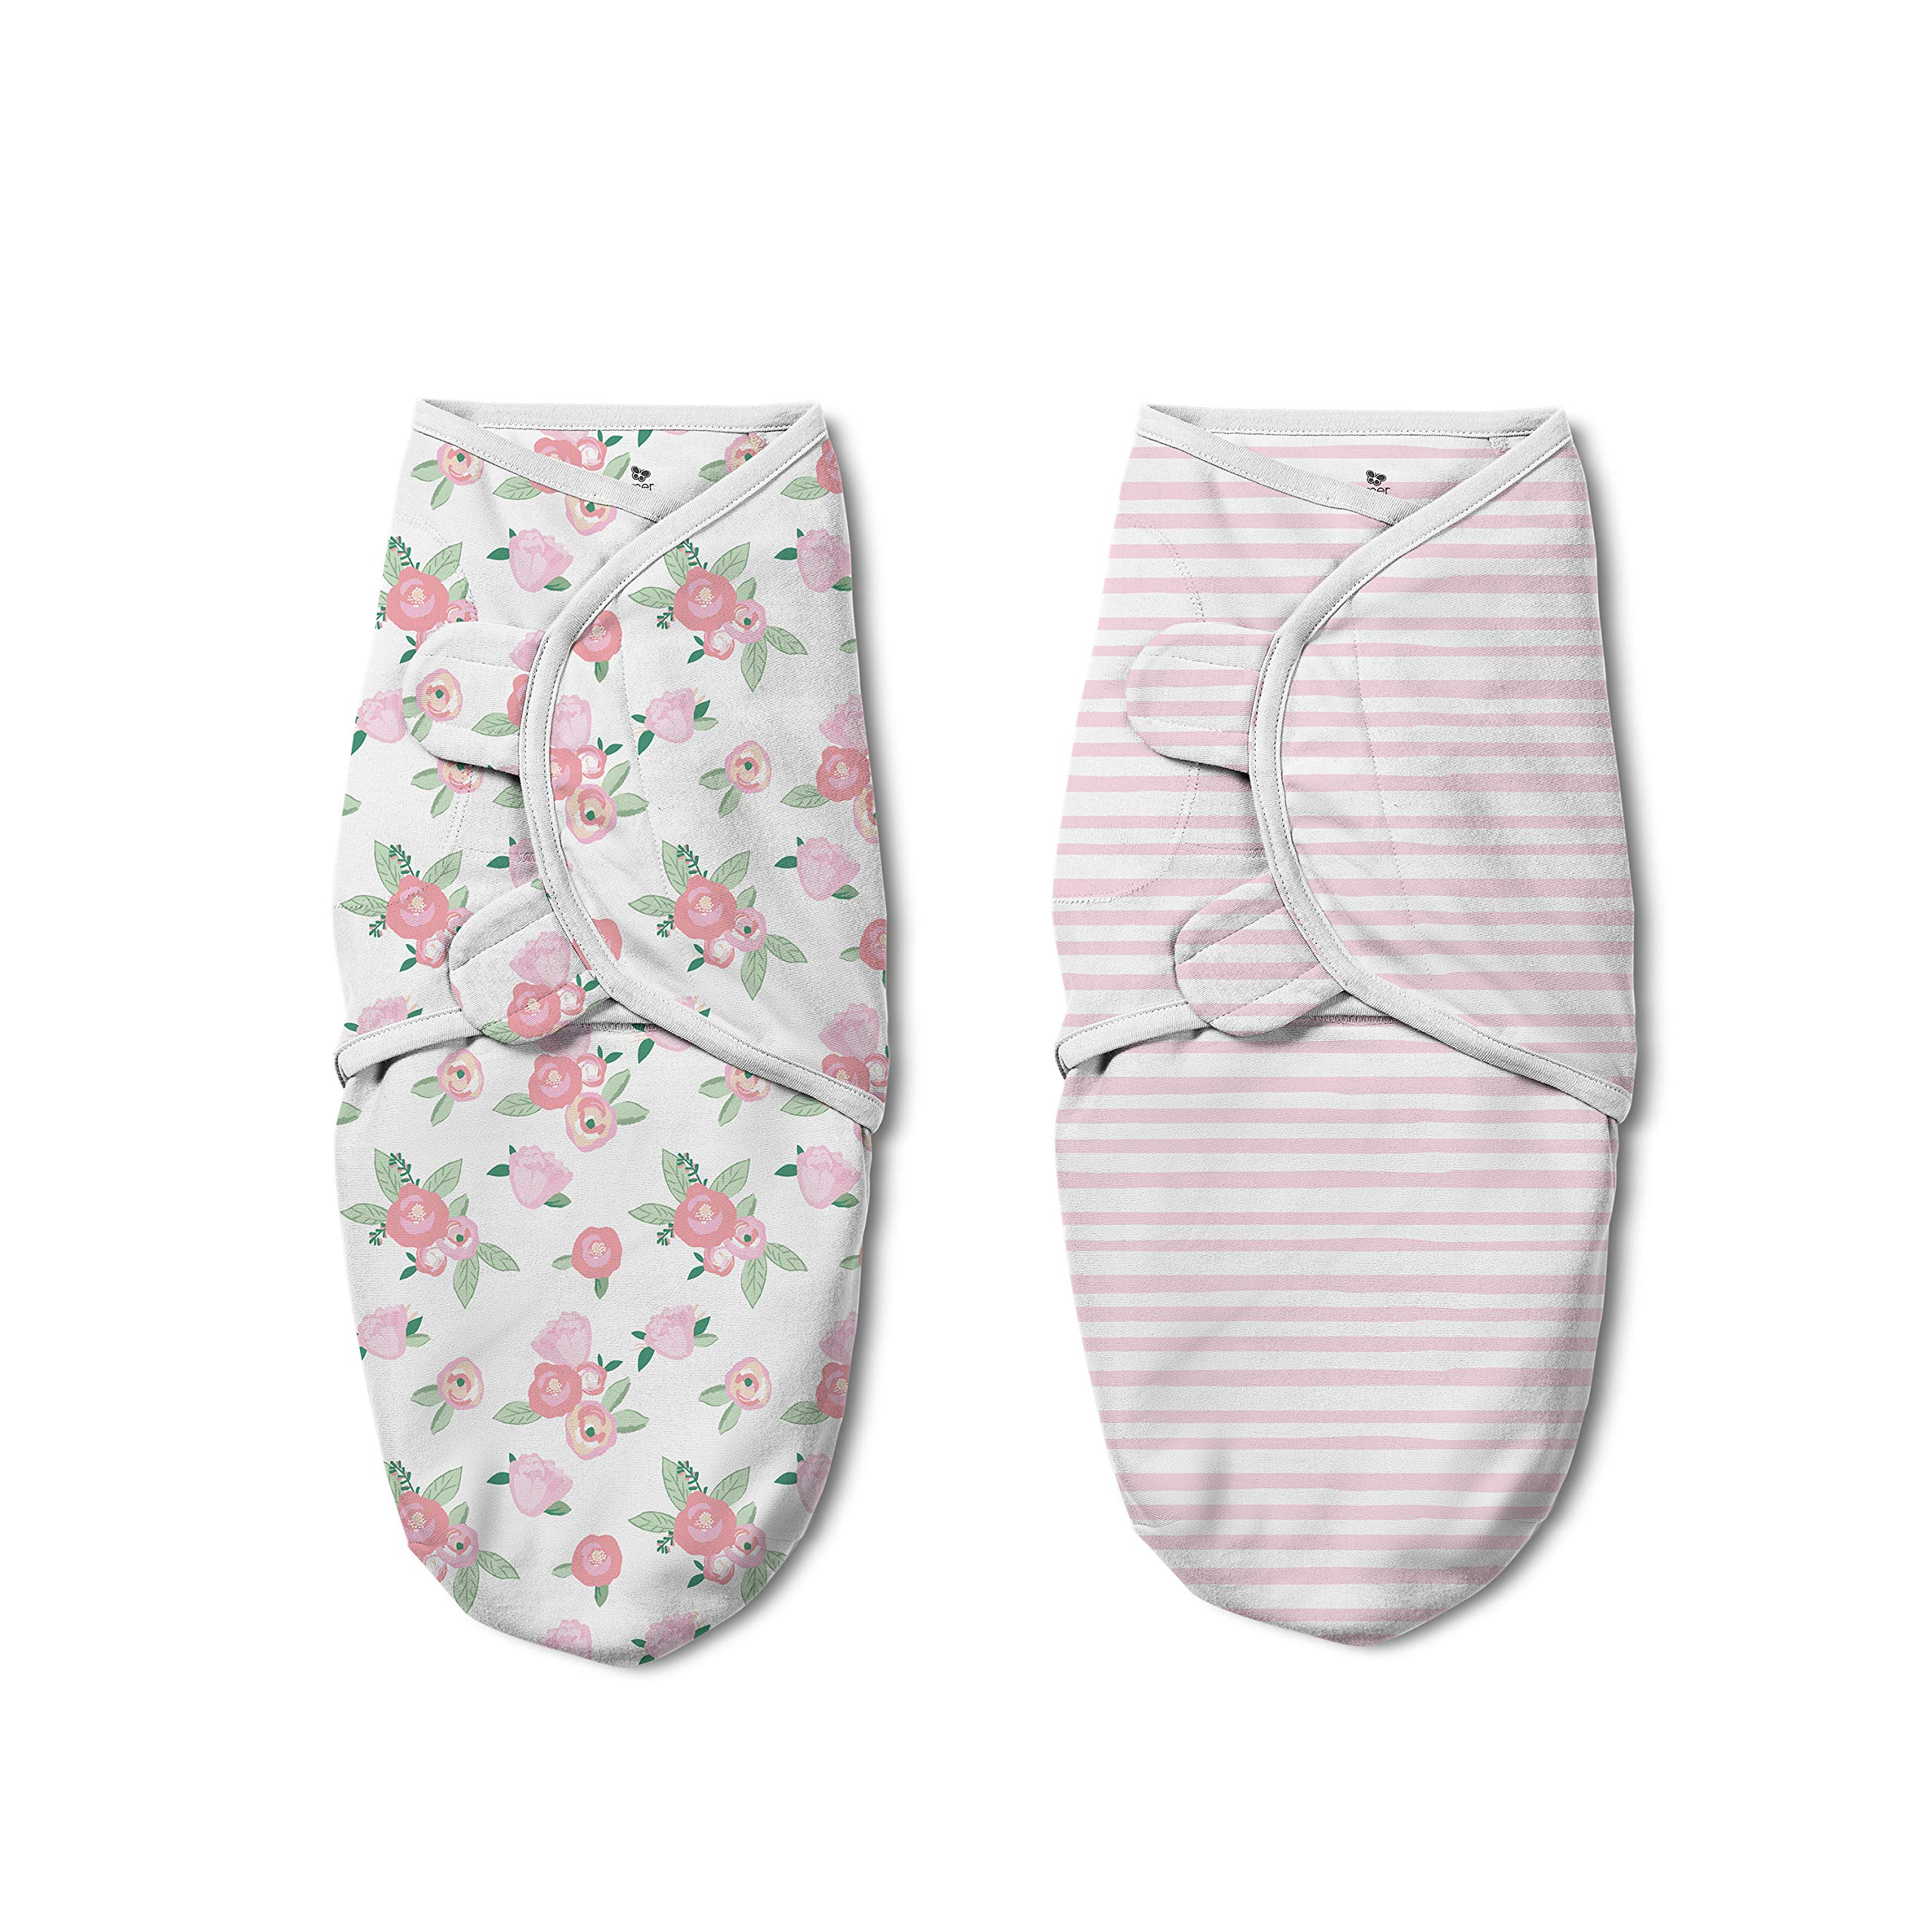 SwaddleMe Original Swaddle Luxe Edition with Easy Change Zipper 2-PK - Watercolor Floral (SM)